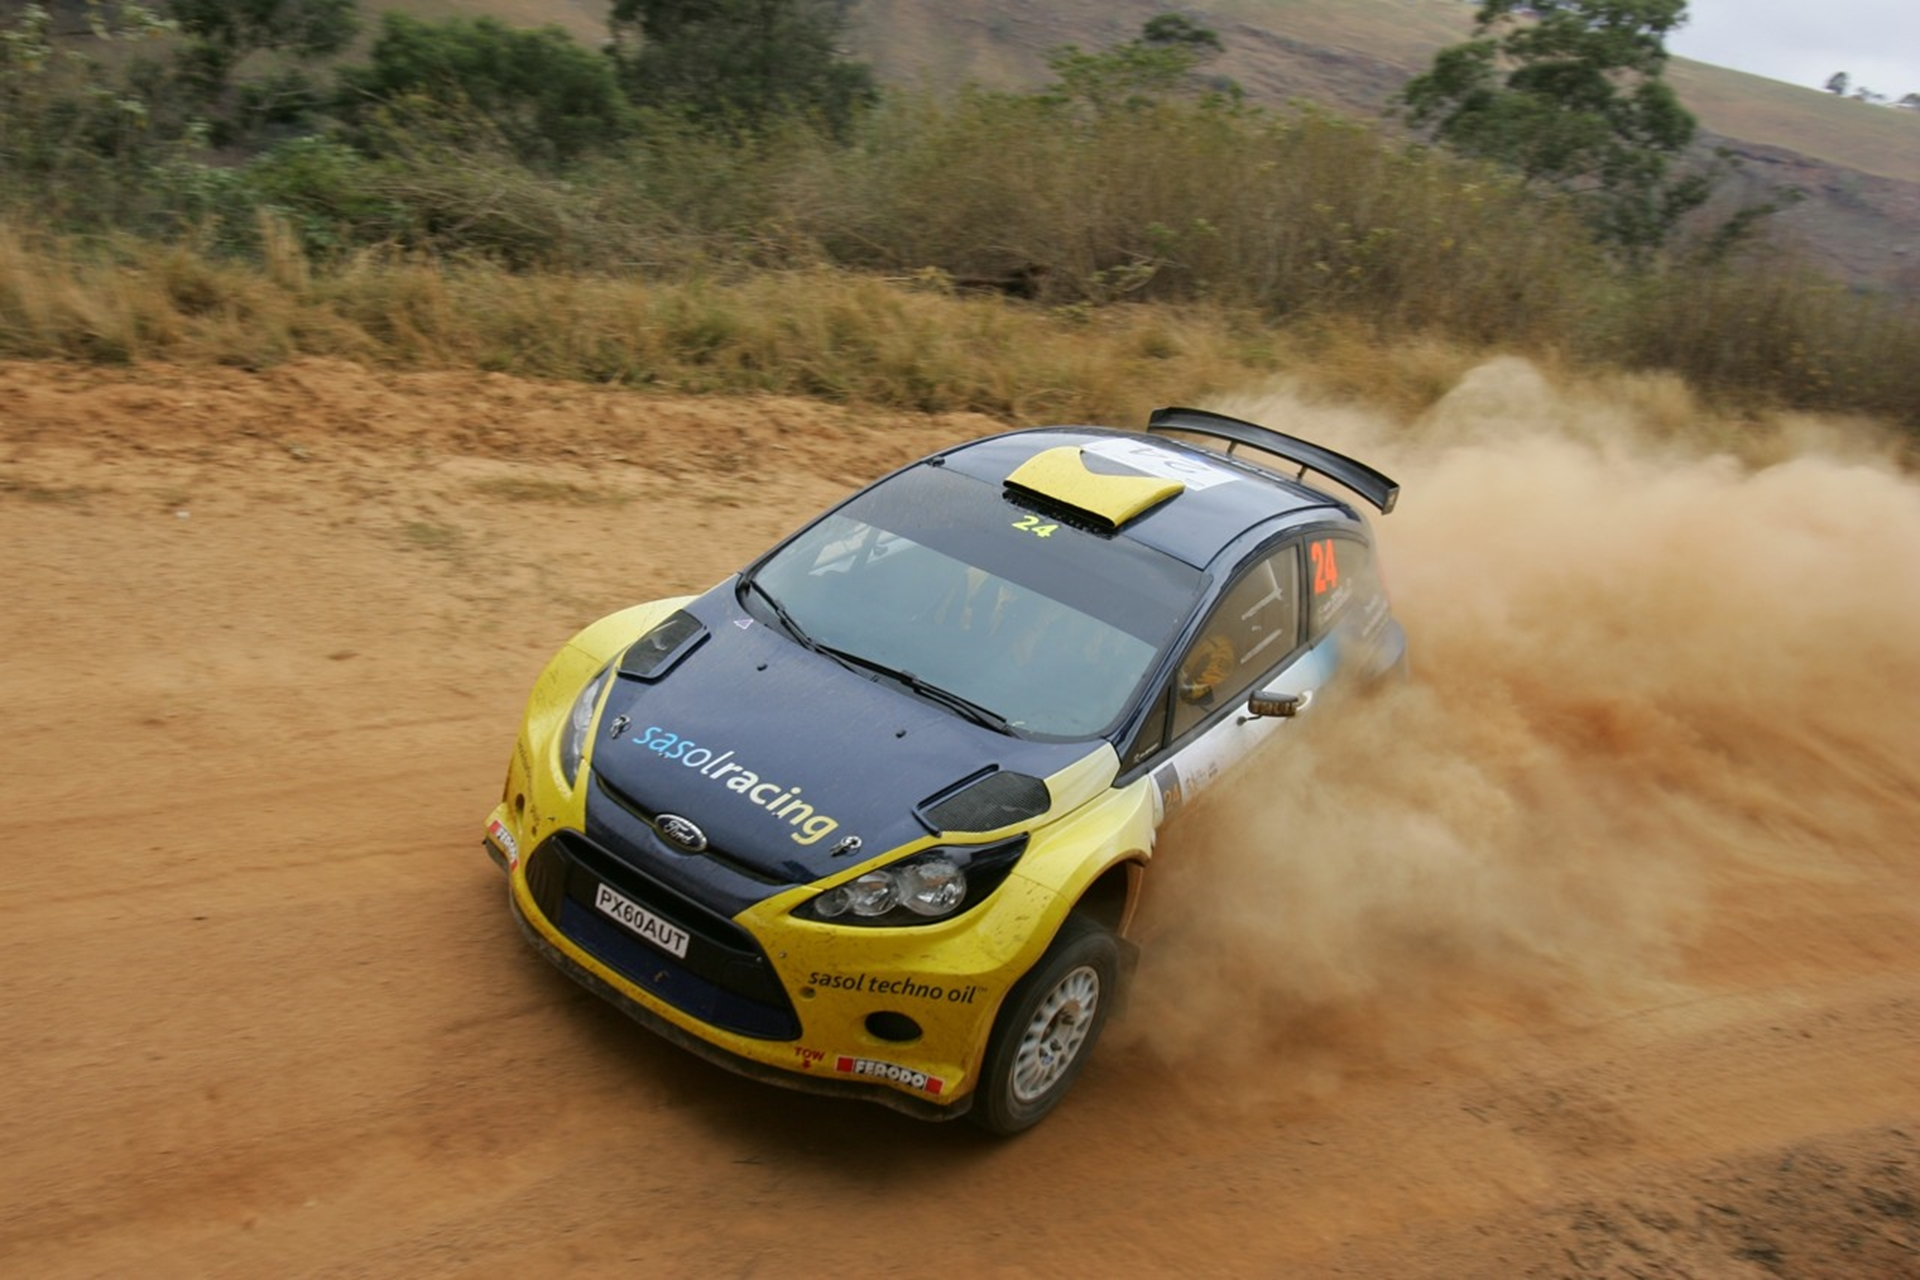 Sasol Ford Racing